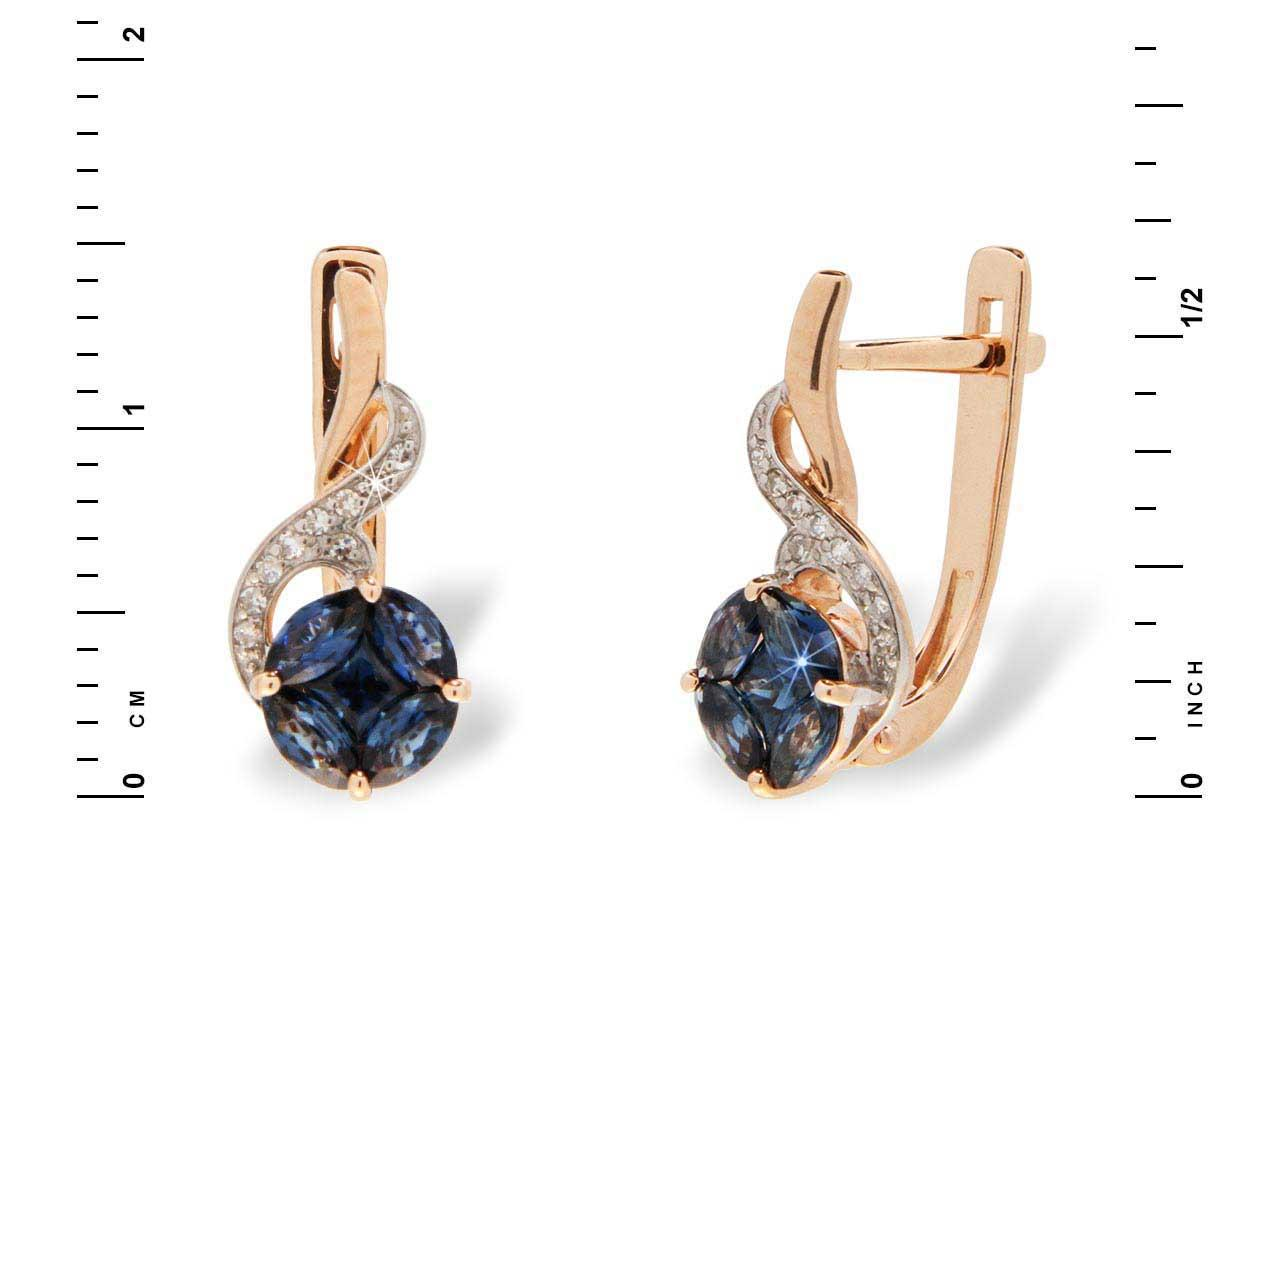 Sapphire flower of life earrings 3